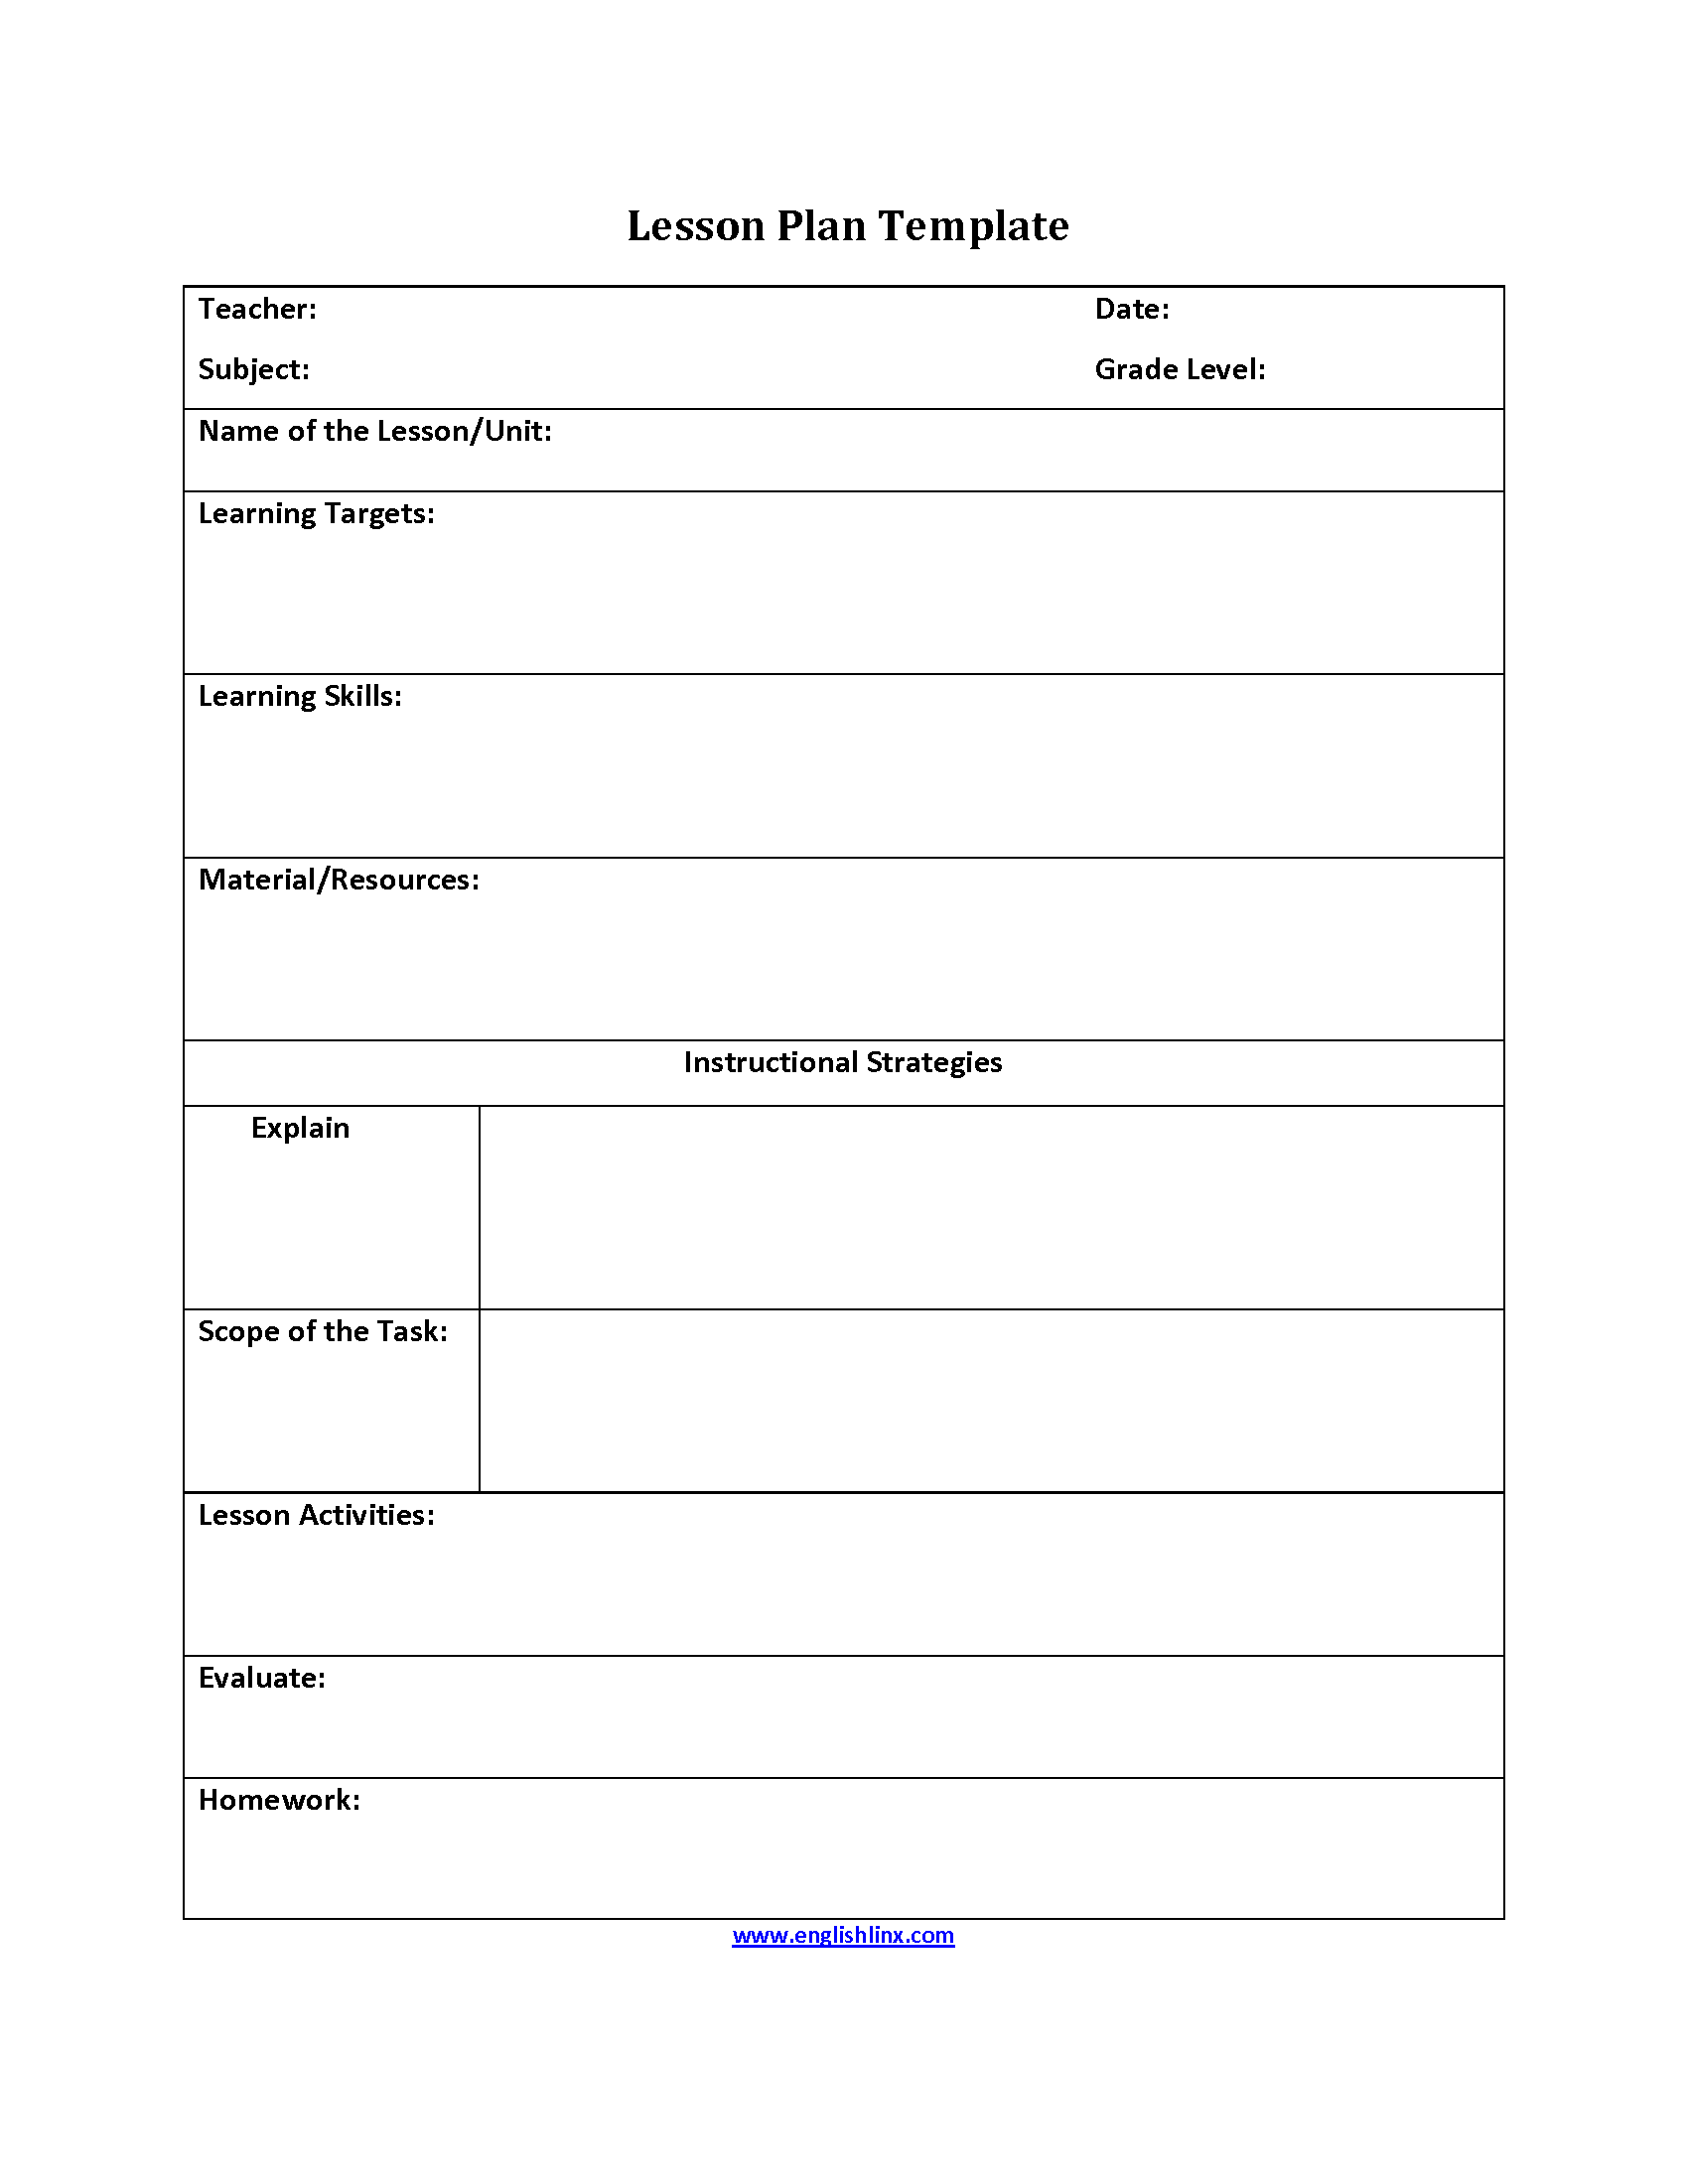 Englishlinxcom Lesson Plan Template - Templates for lesson plans